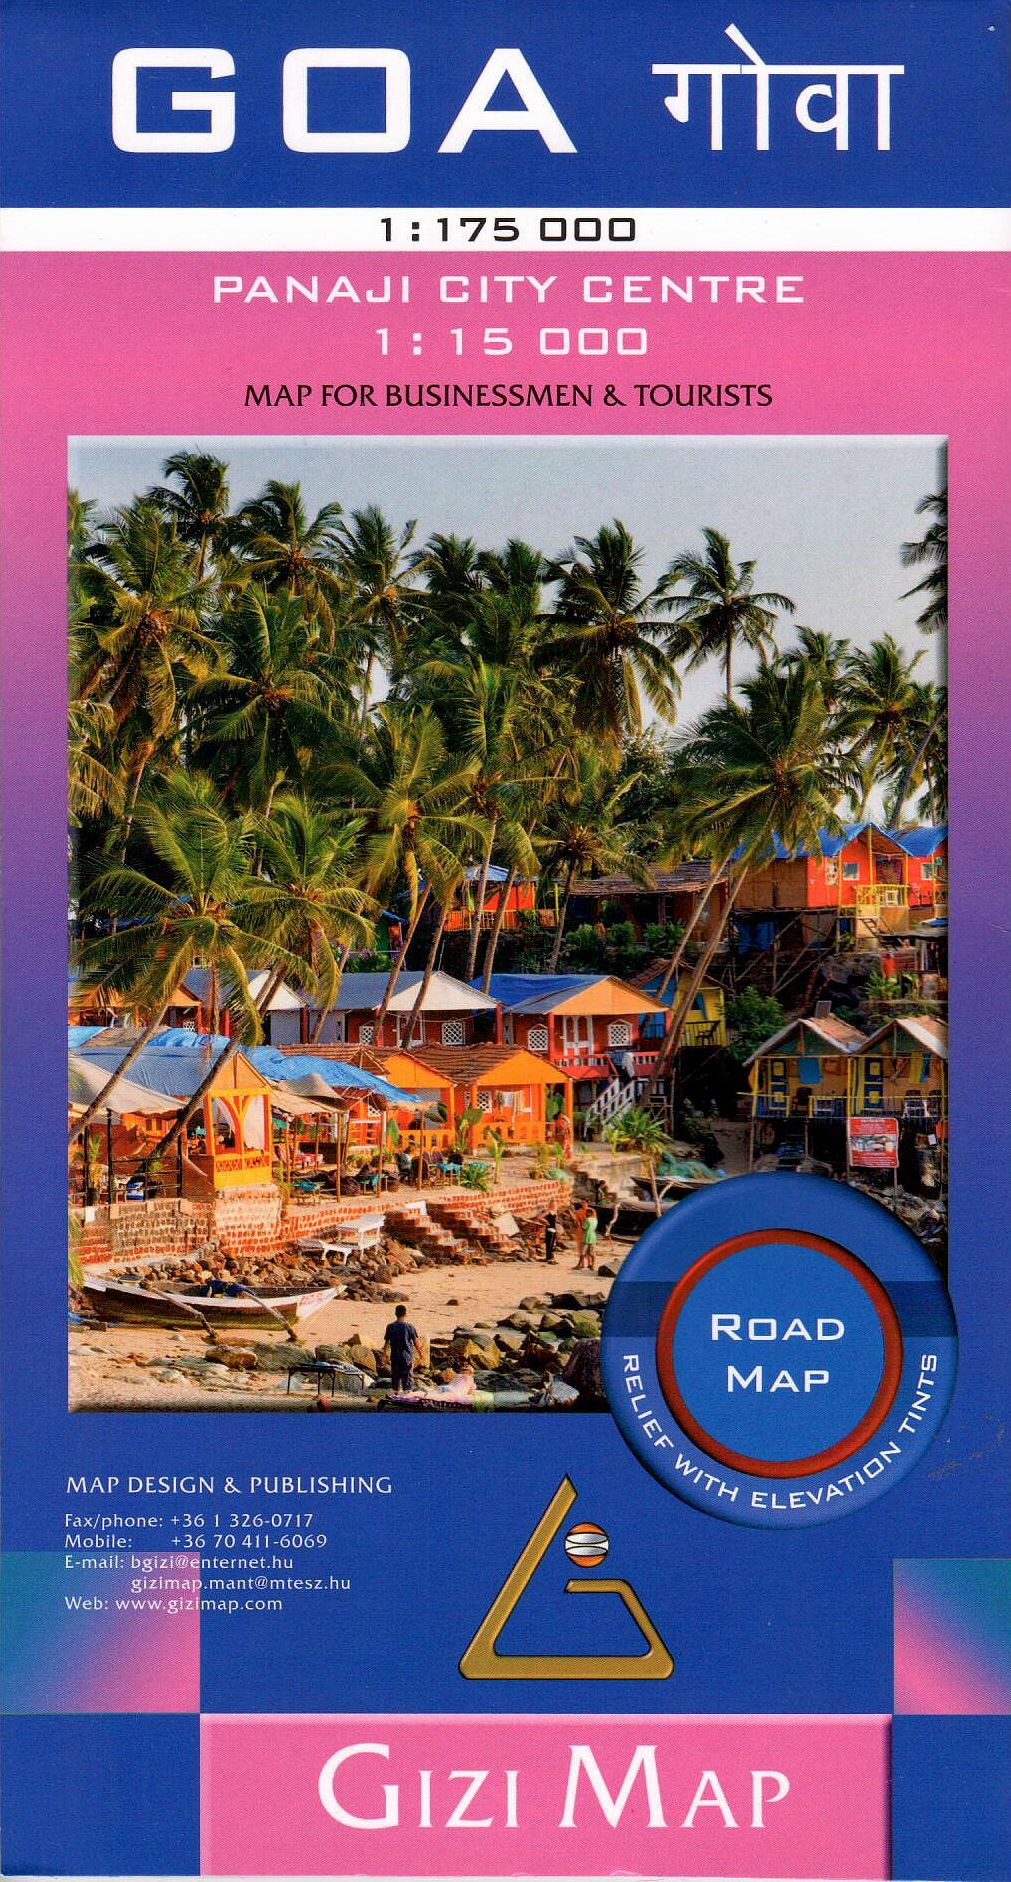 Goa geographical map with tourist and road information